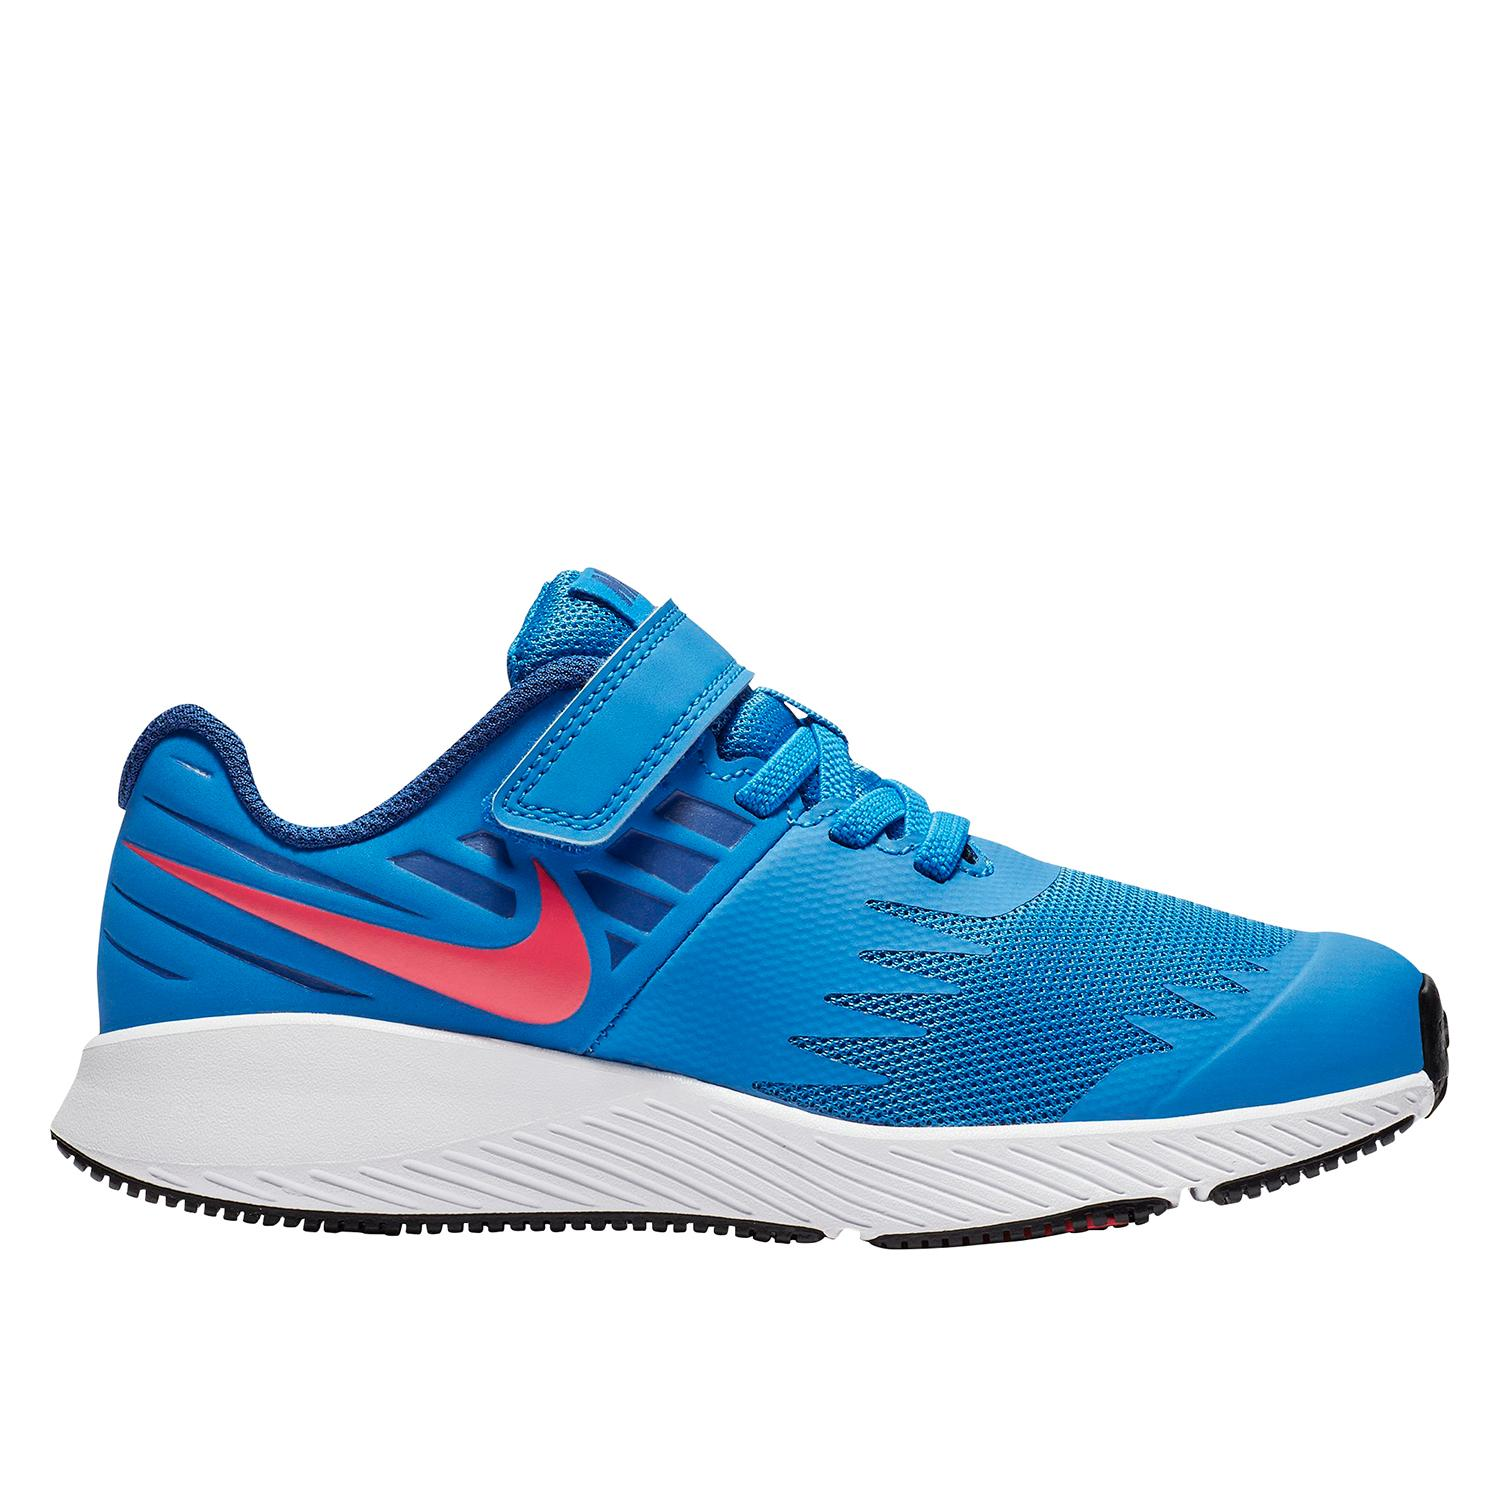 79570febfef Nike Star Runner PS Kid s Running Shoe in Blue - Intersport Australia